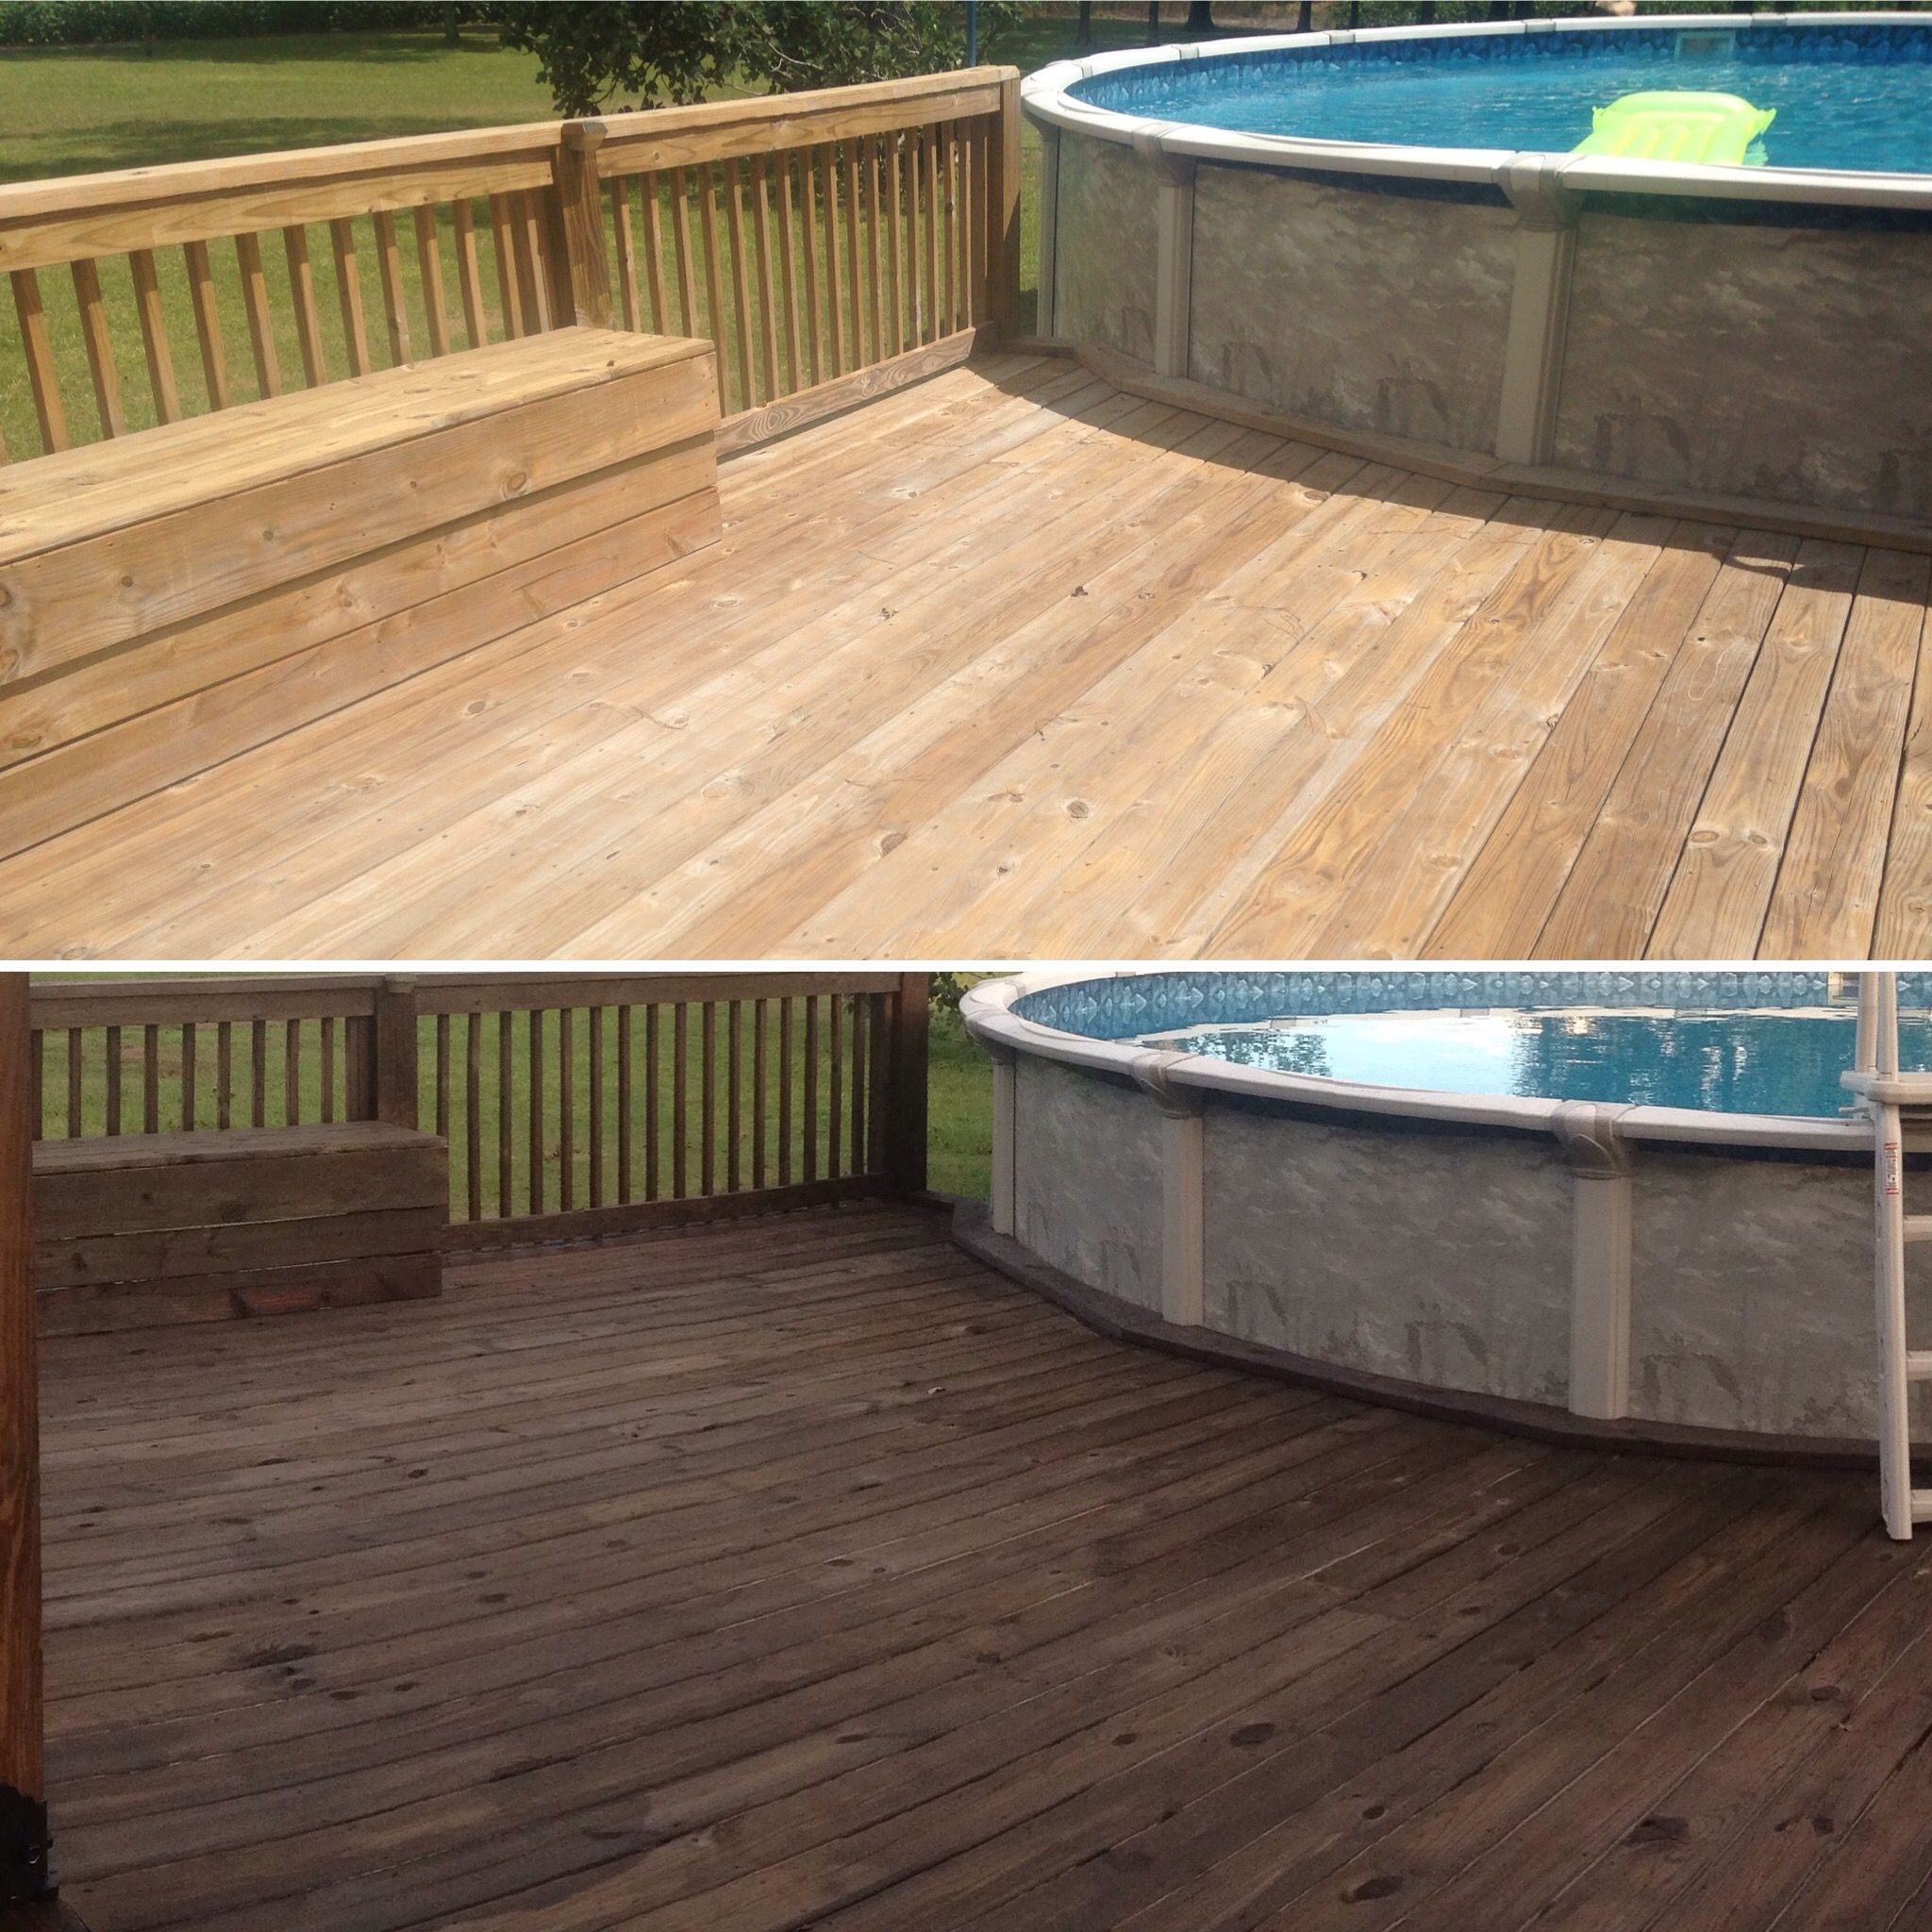 Stained Deck Olympic Semi Transparent Oxford Brown Summerproject Olympic Deck Stain Colors Staining Deck Olympic Deck Stain